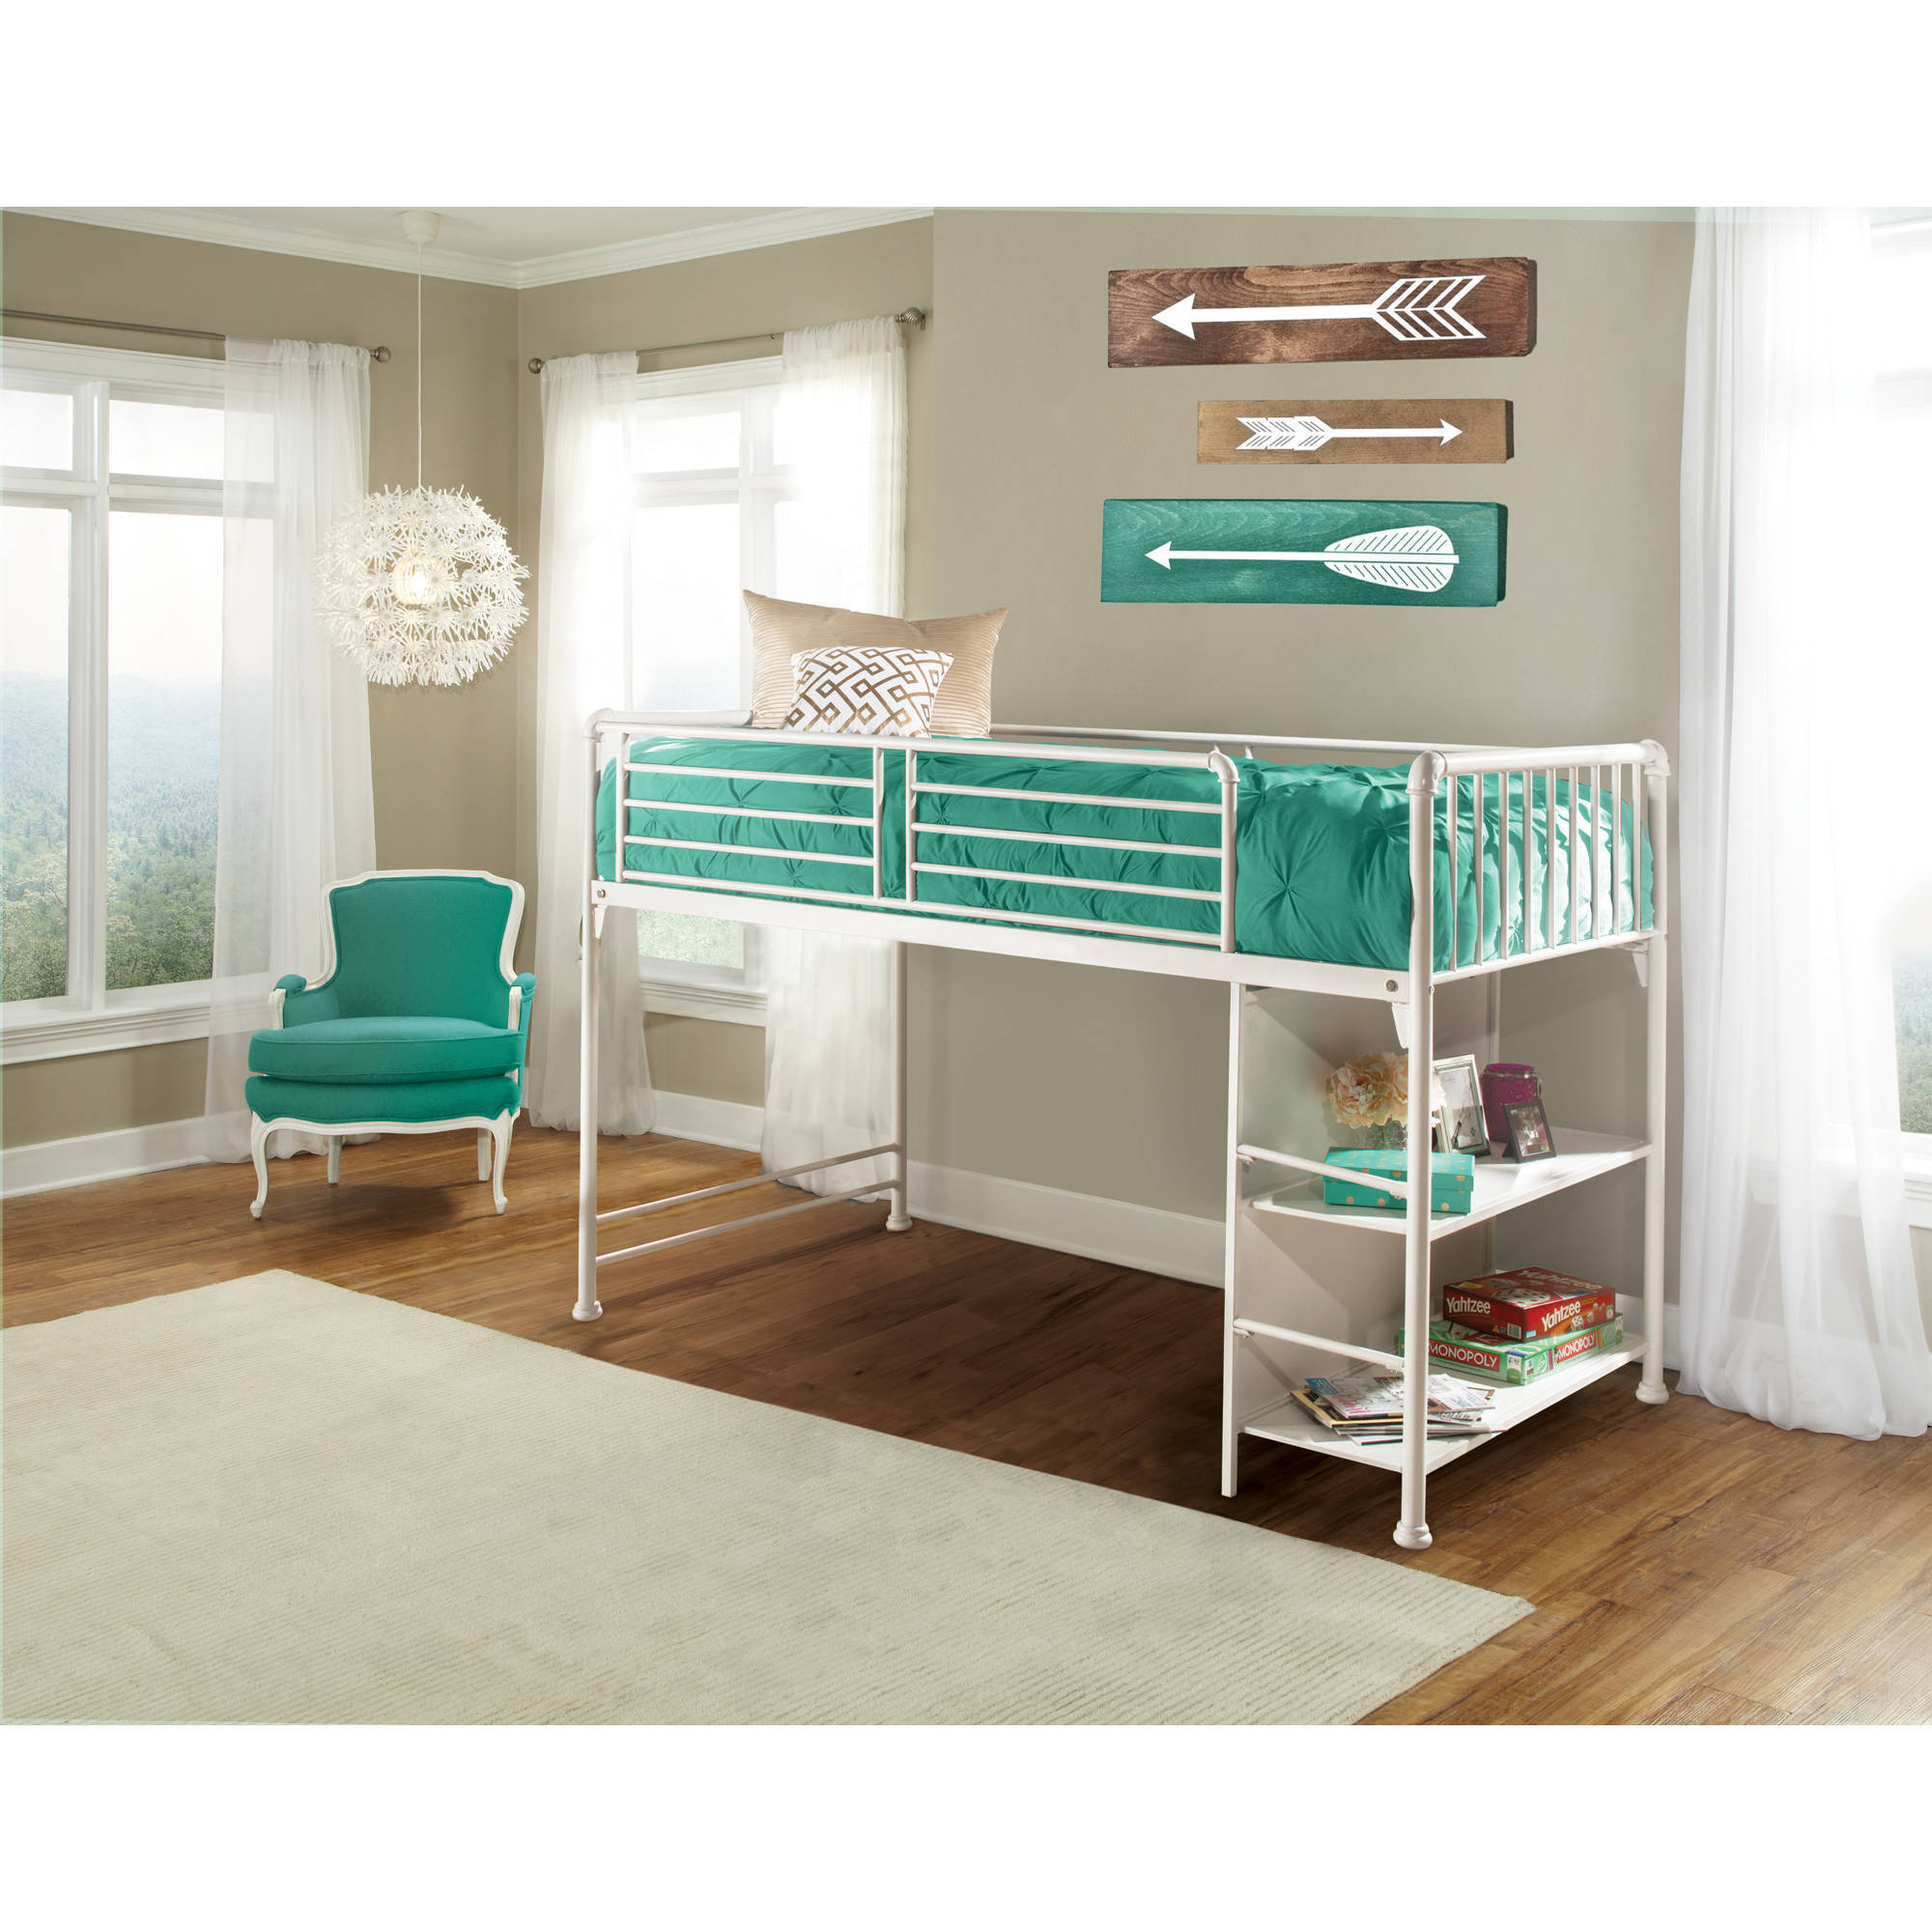 Hillsdale Furniture Brandi Junior Loft Bed Walmart Com